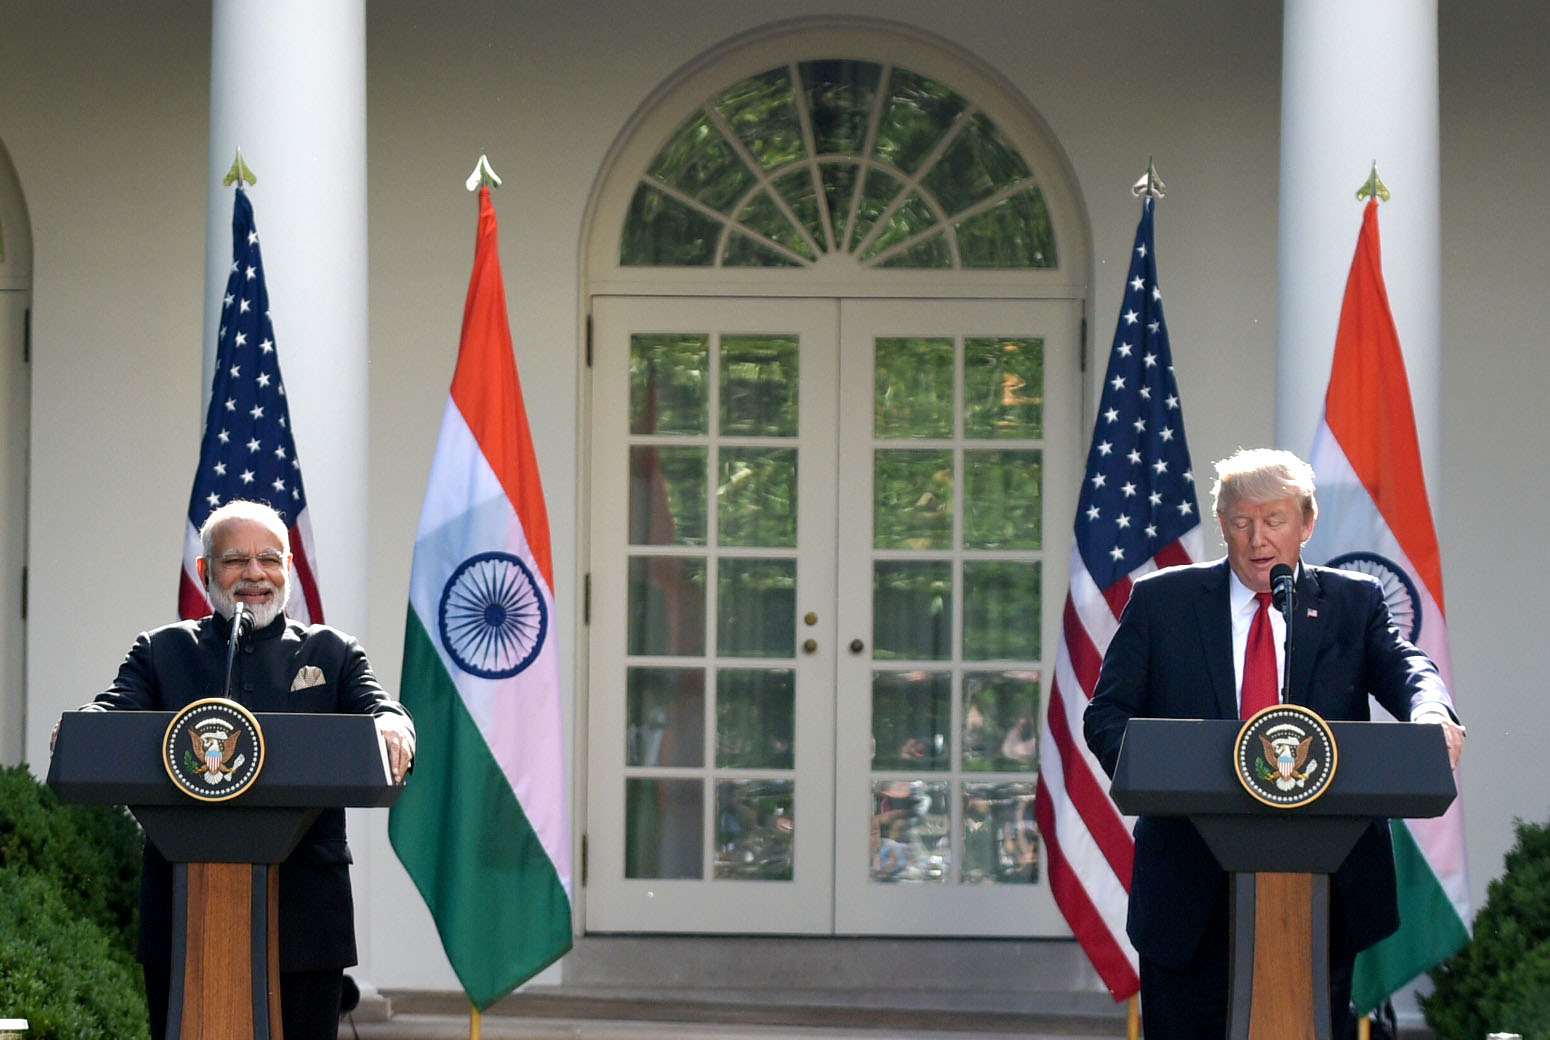 PM Narendra Modi and President Donald Trump addressing the media in the Rose Garden at the White House